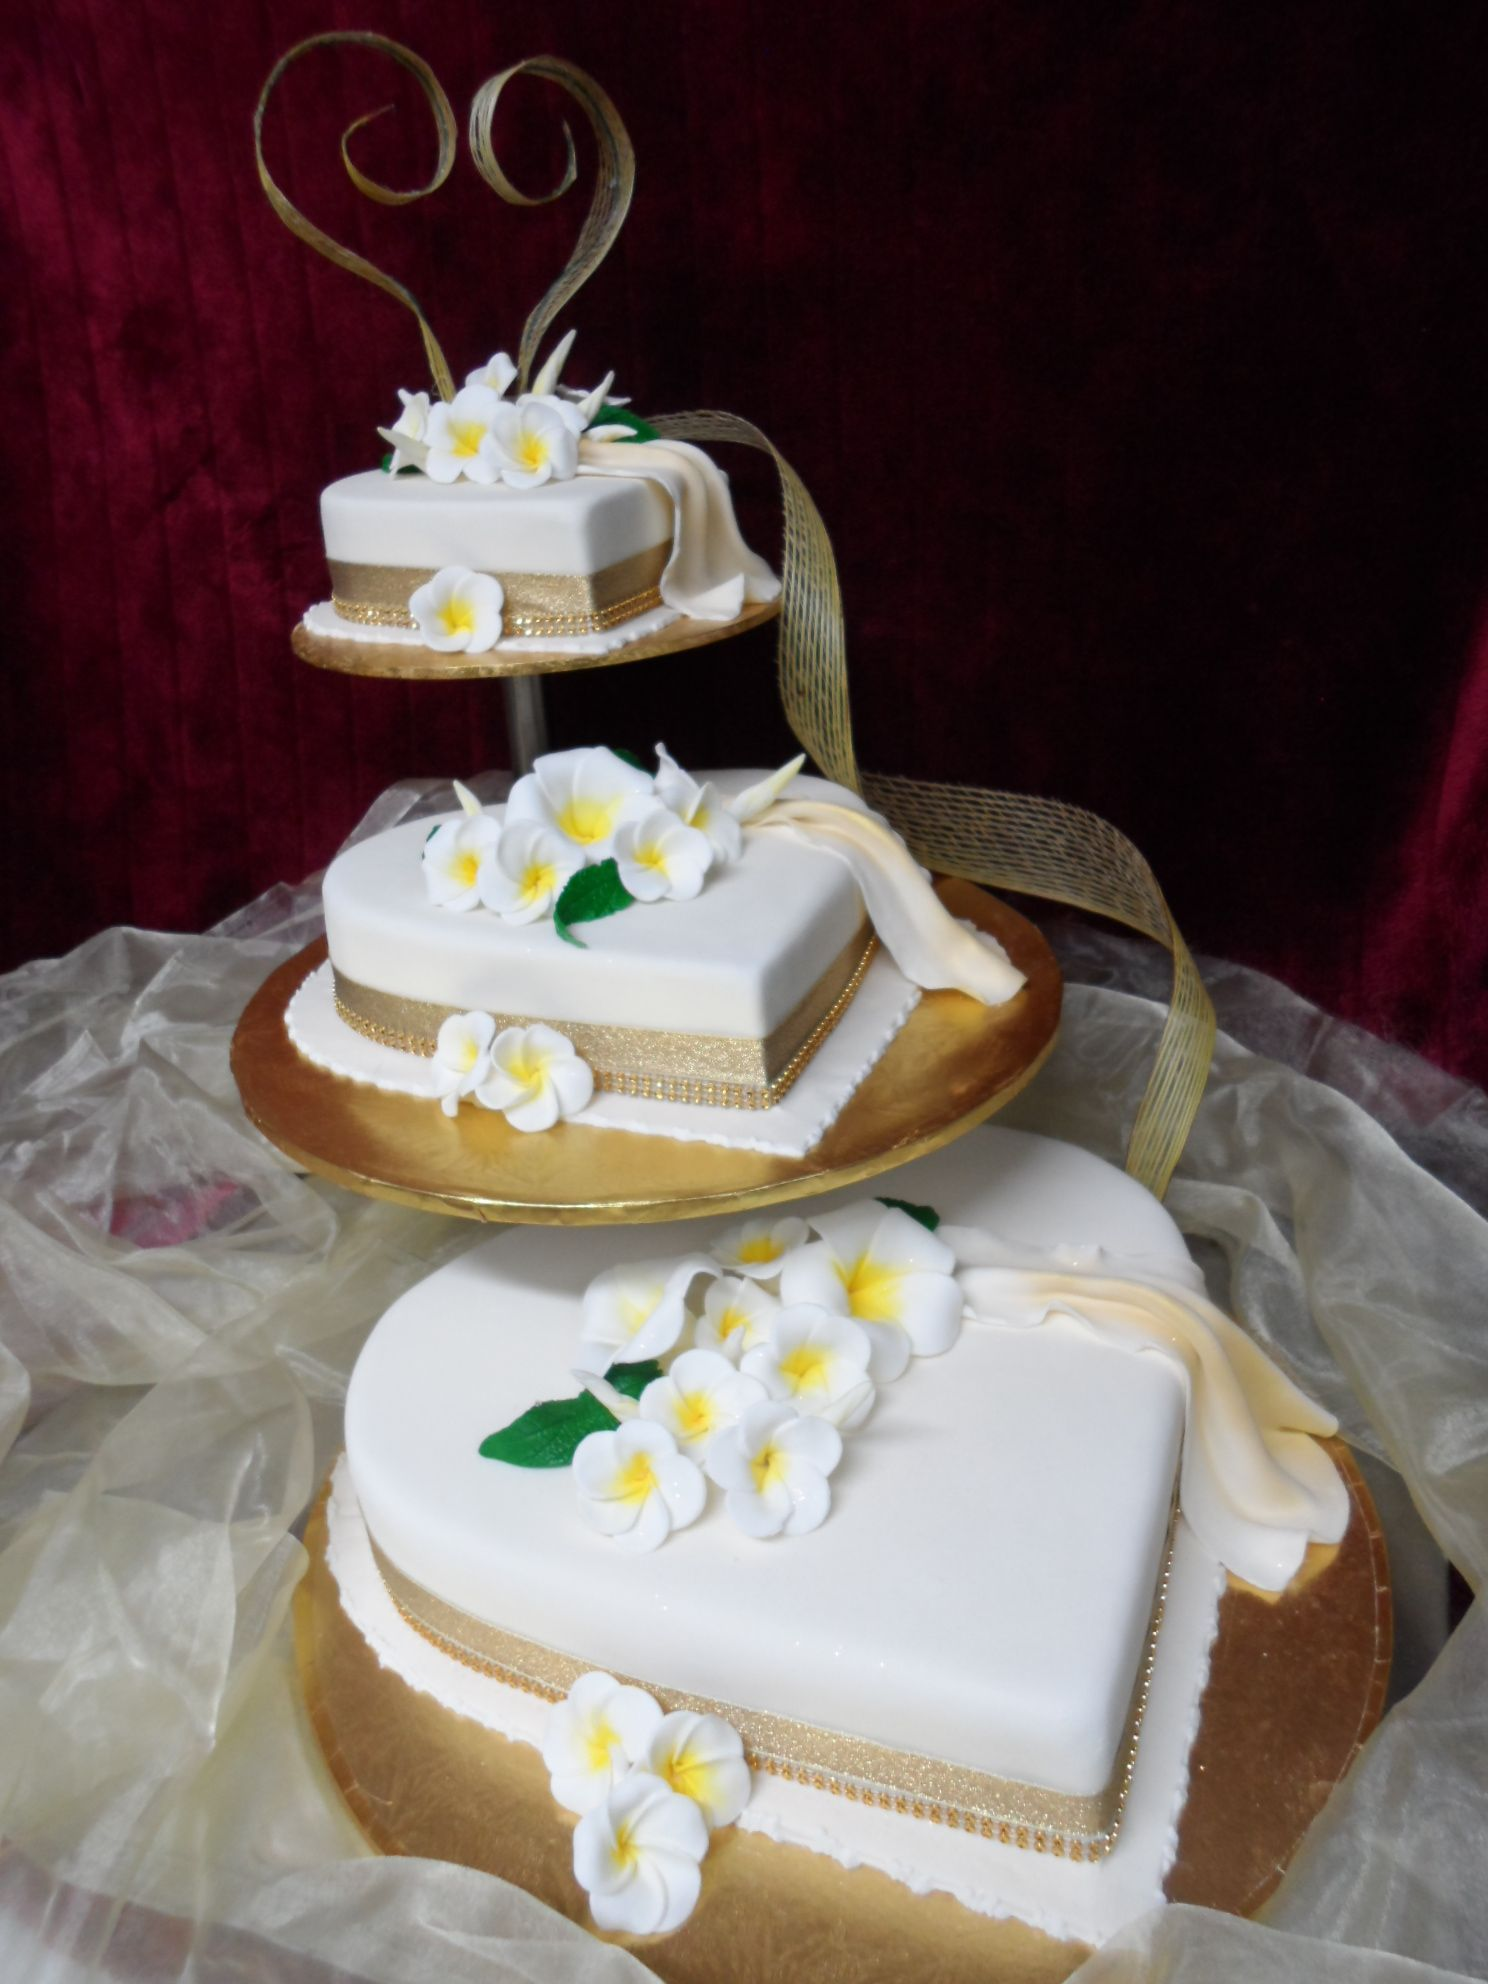 Frangipani Themed Kiwiana Heart Shaped Wedding Cake Best Cakes In Auckland New Zealand Fresco